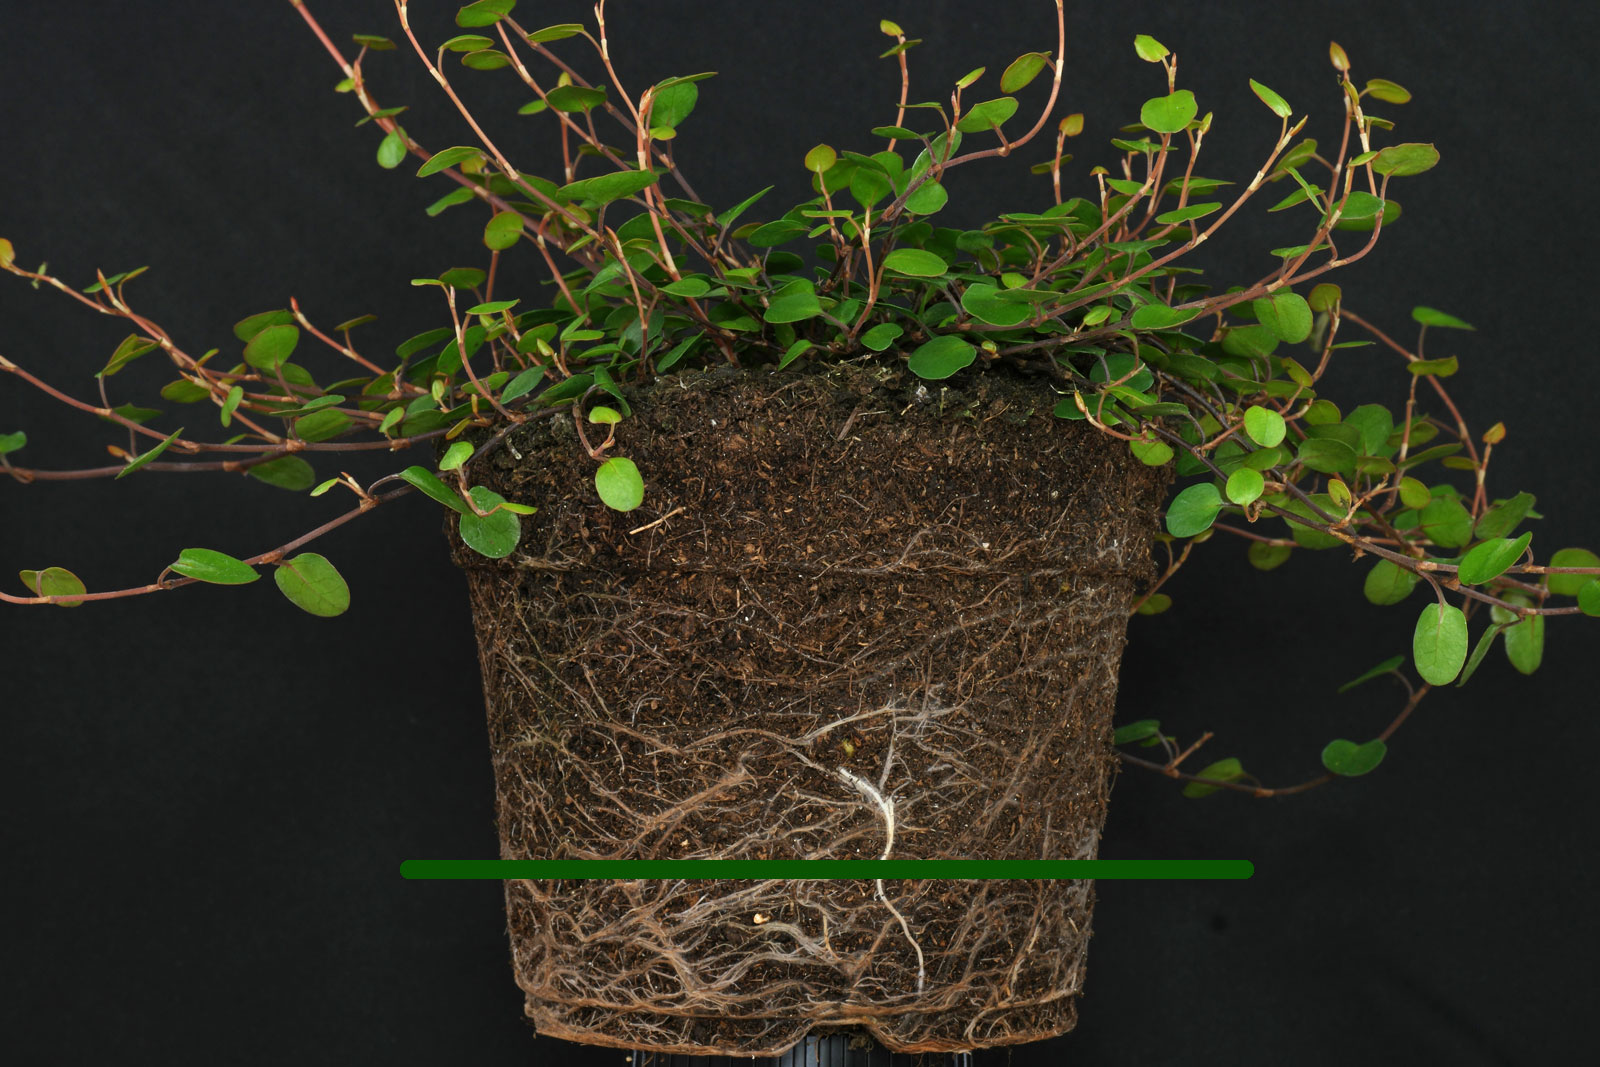 Muehlenbeckia roots